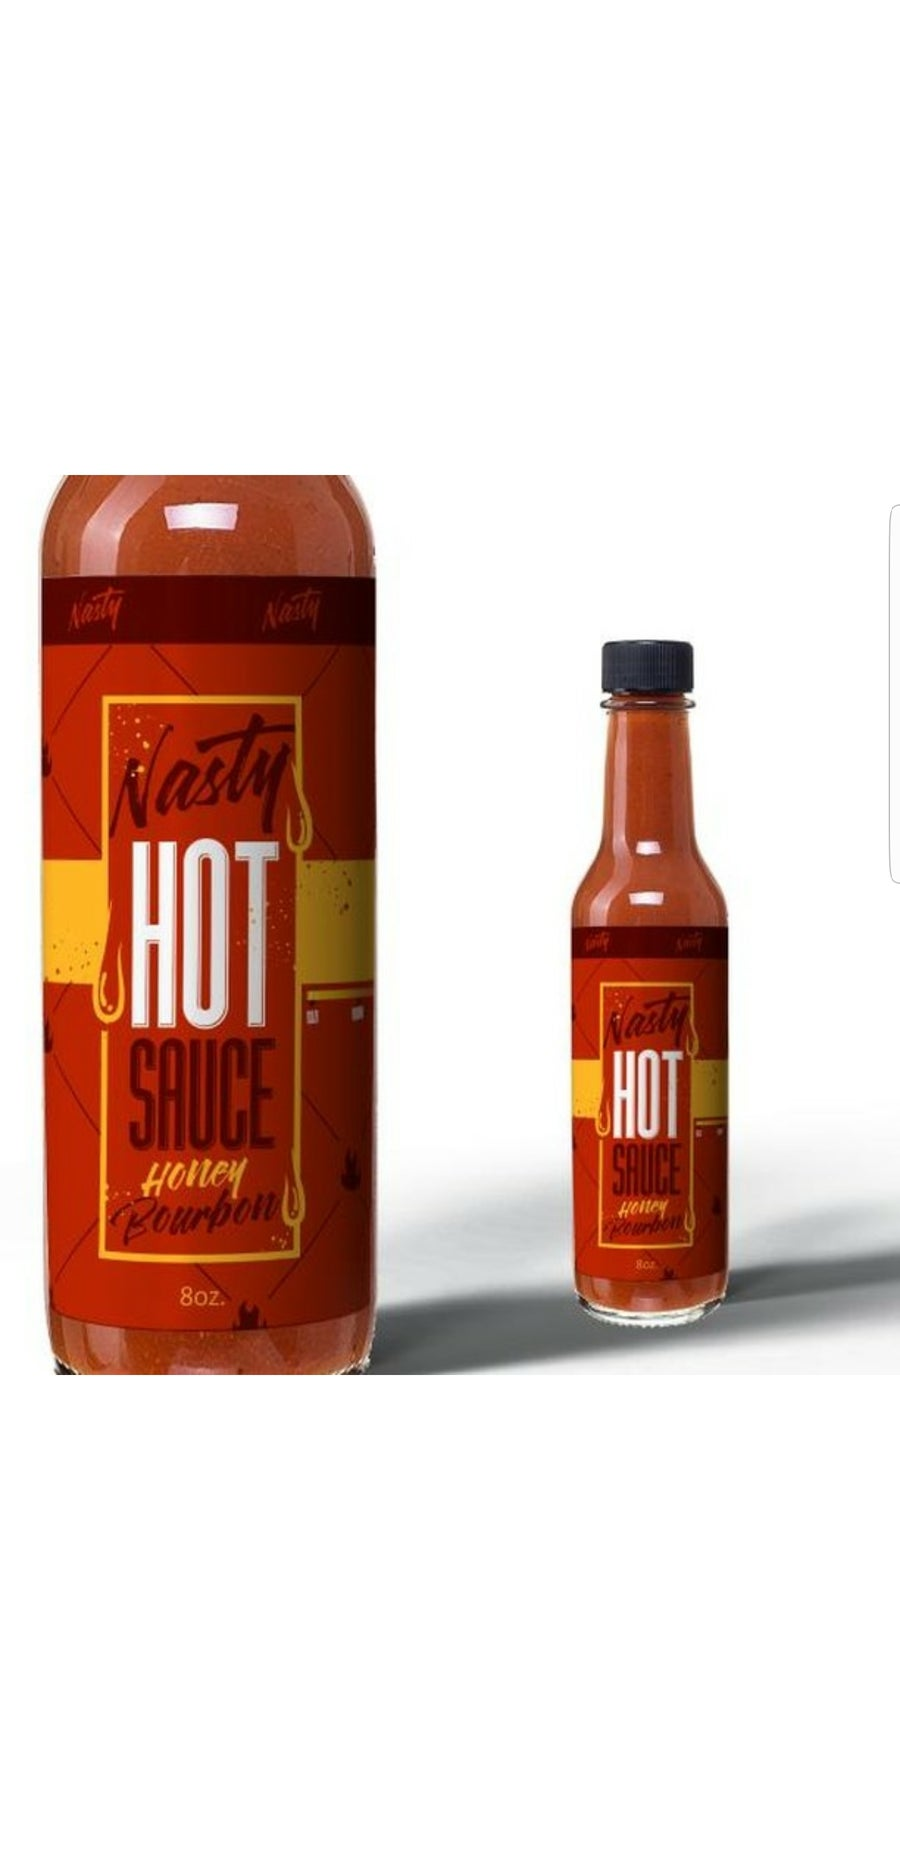 Image of Nasty Honey Bourbon Hot Sauce